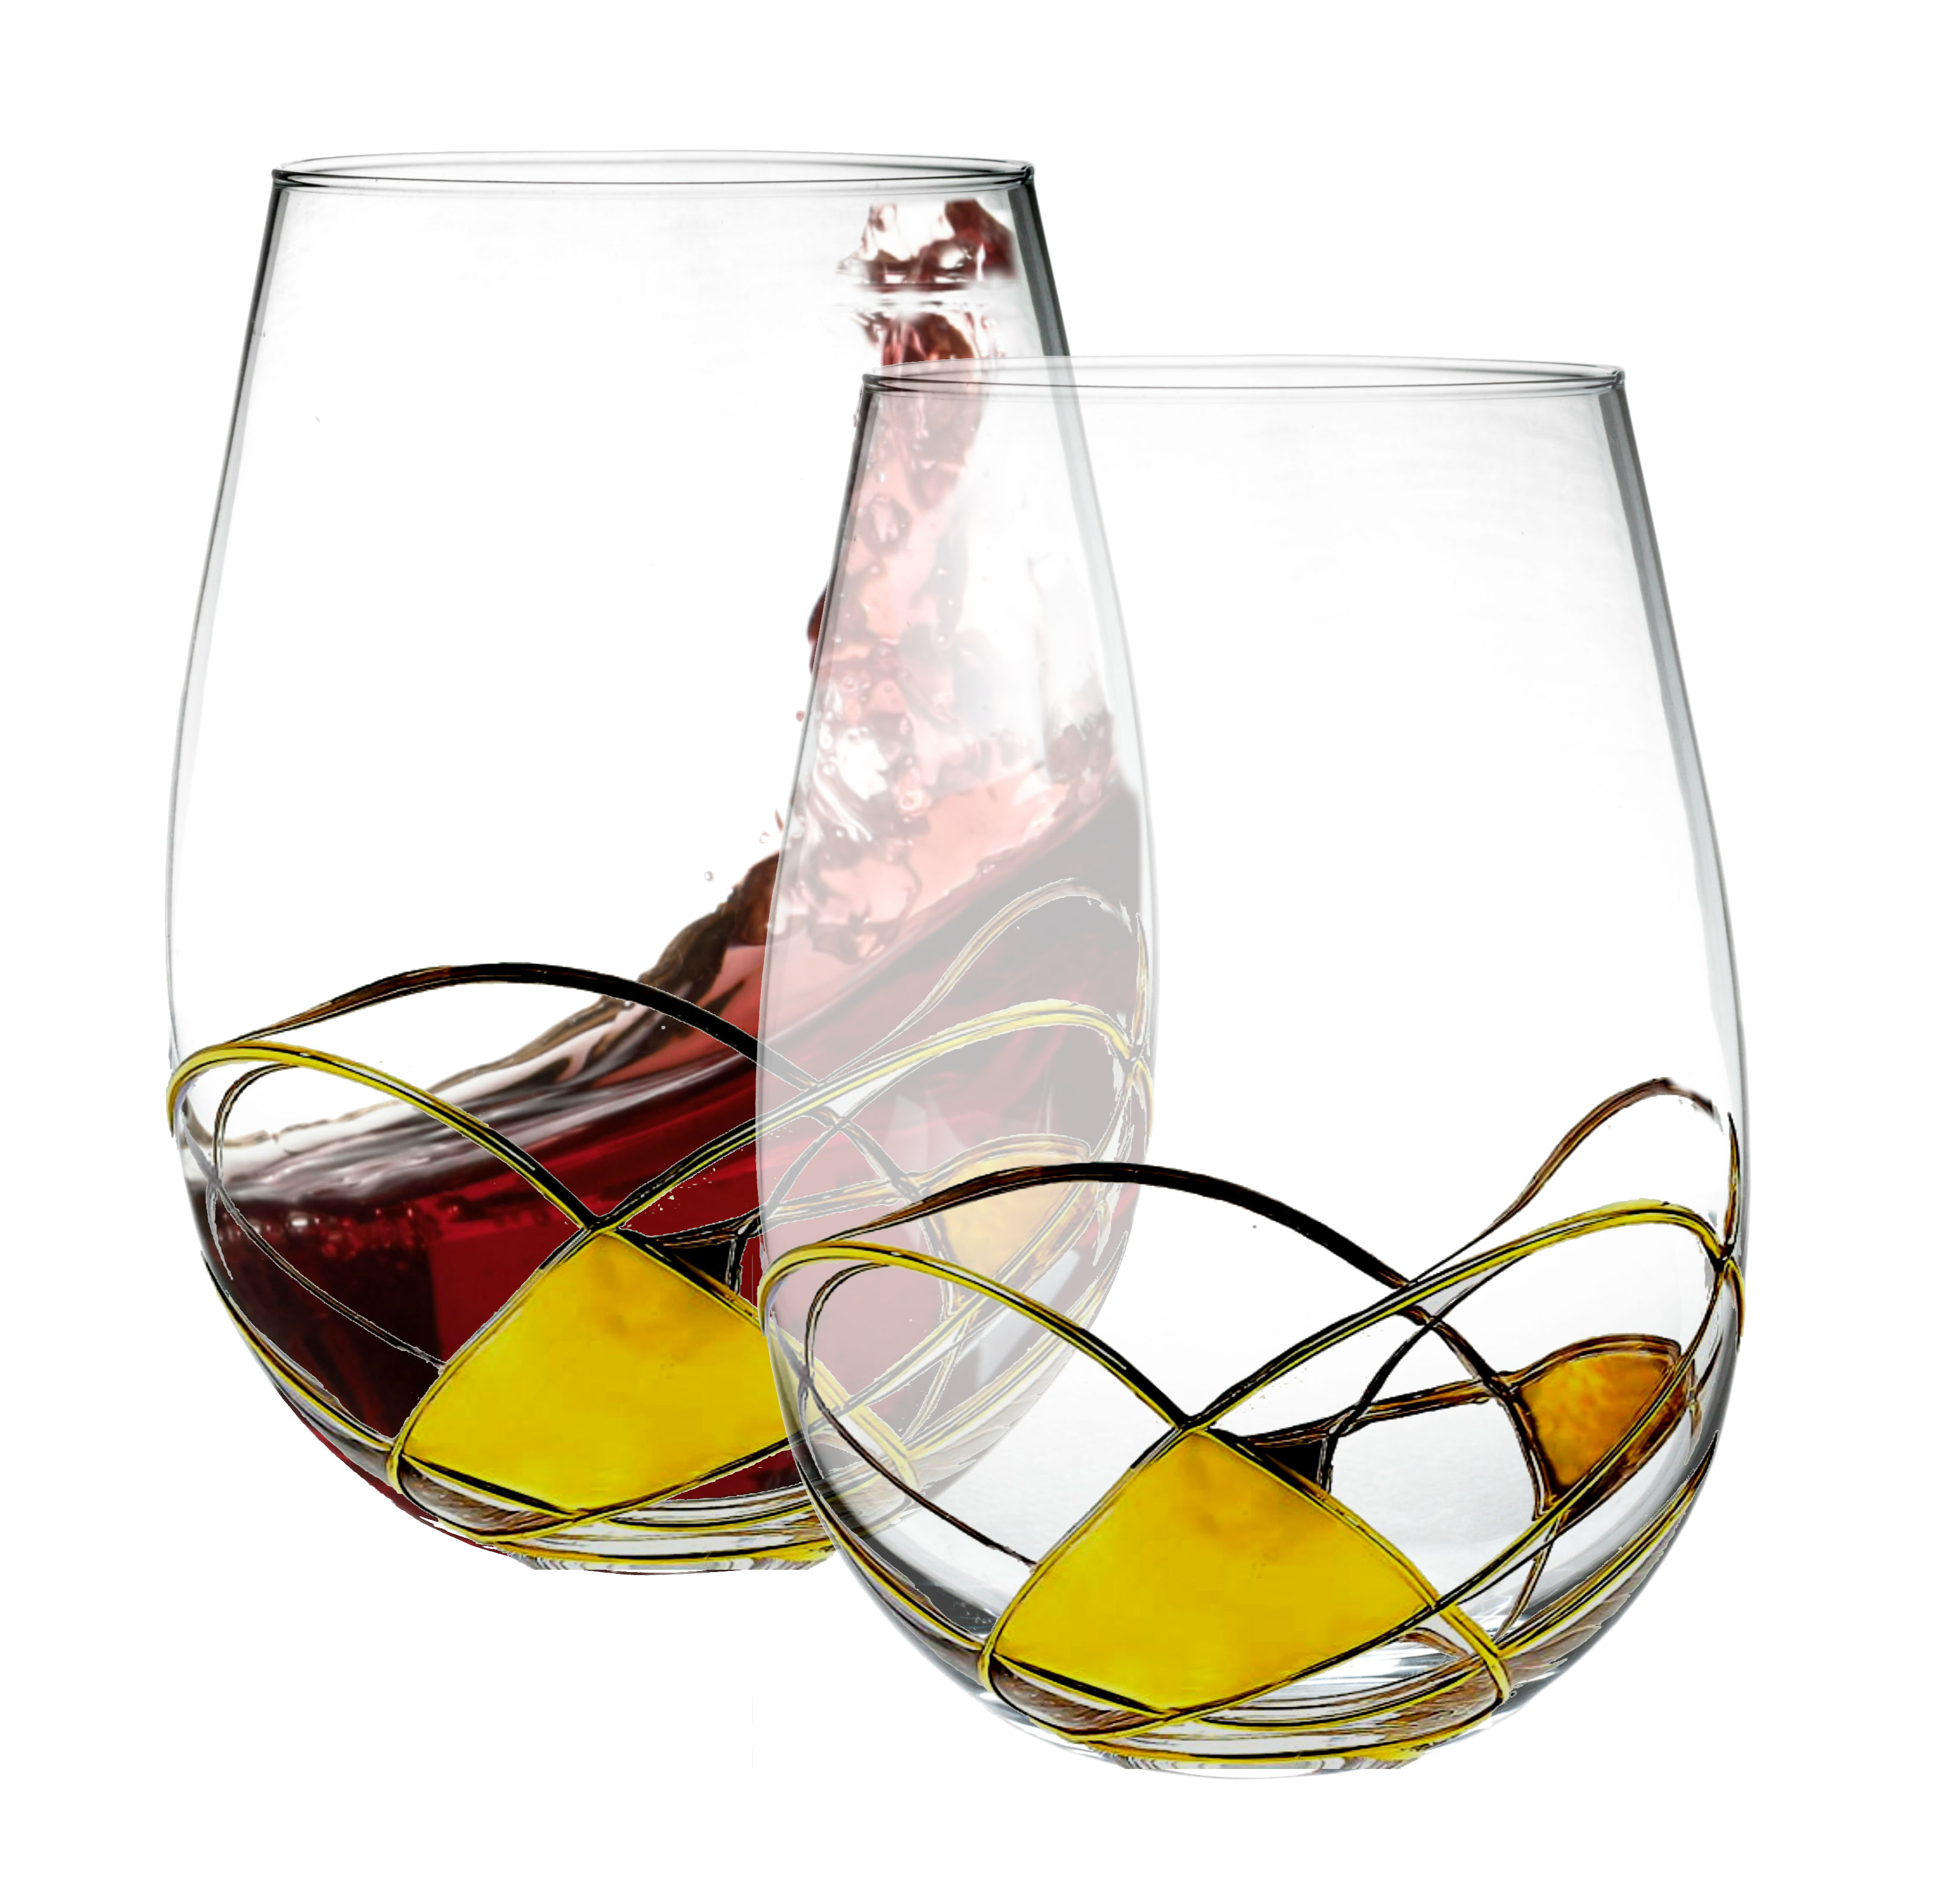 Bezrat Stemless Wine Glasses Set Of Two Hand Painted Large Premium Red And White Lead Free Crystal Essential Gift 18 Ounces Gold Walmart Com